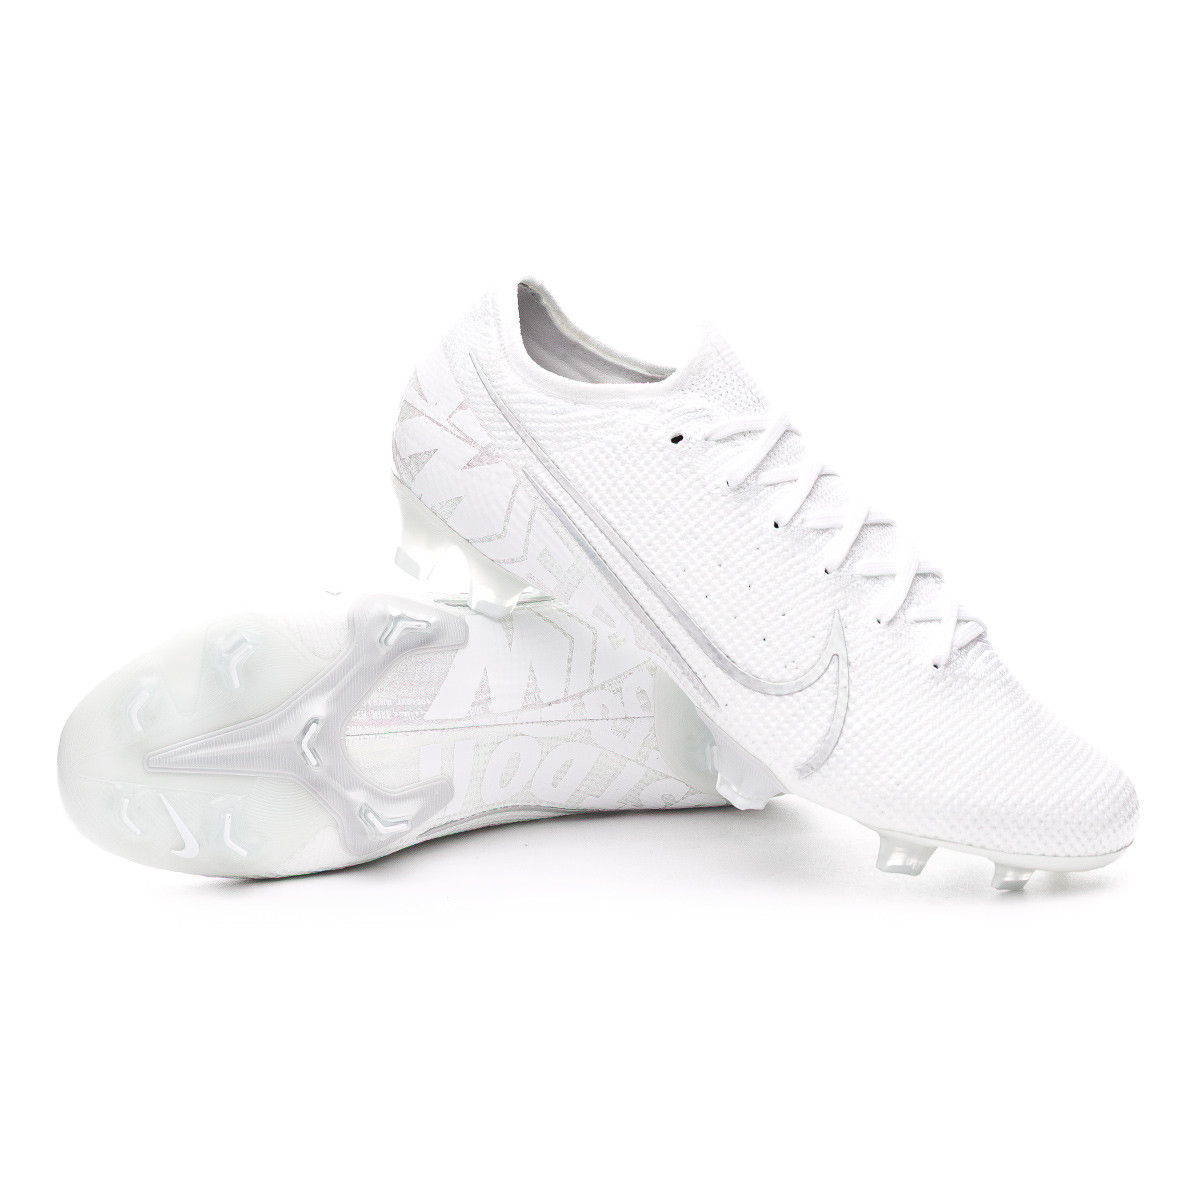 Residenza sicurezza media  Football Boots Nike Mercurial Vapor XIII Elite FG White-Chrome-Metallic  silver - Football store Fútbol Emotion